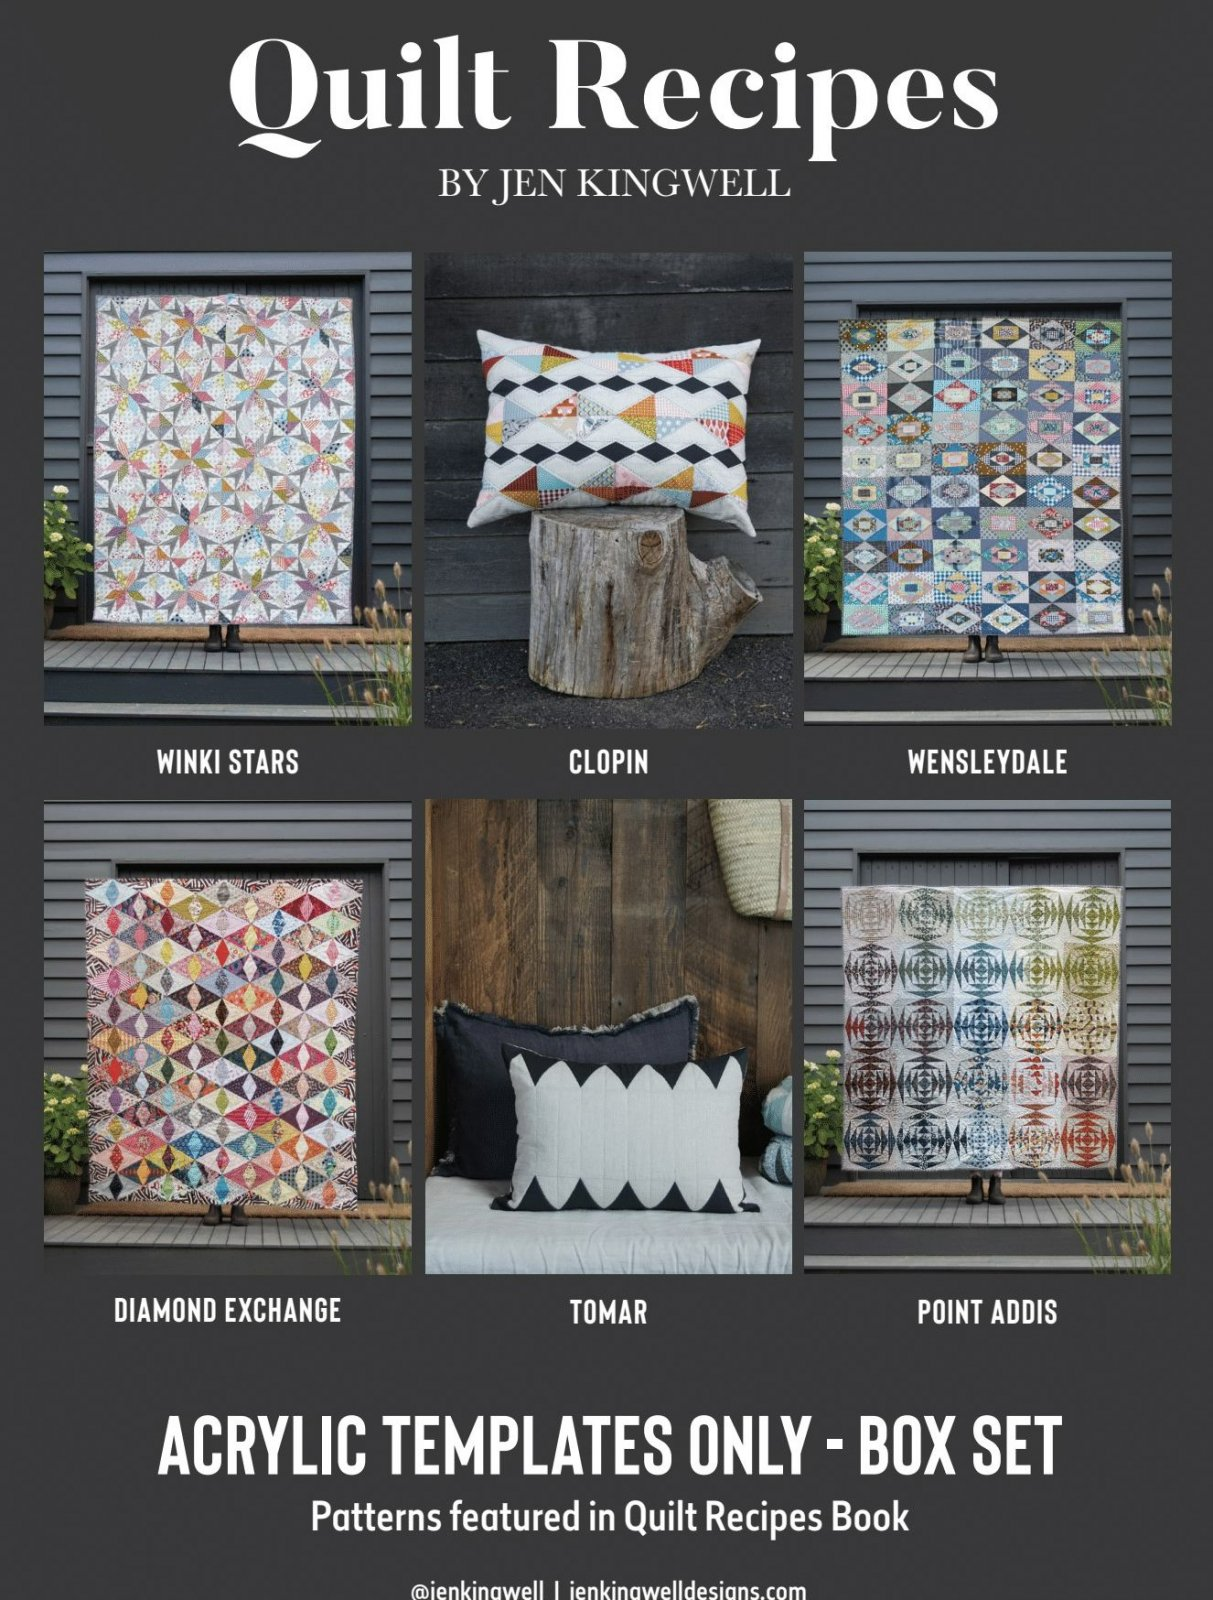 Quilt Recipes Box Set of 6 Acrylic Template Sets by Jen Kingwell